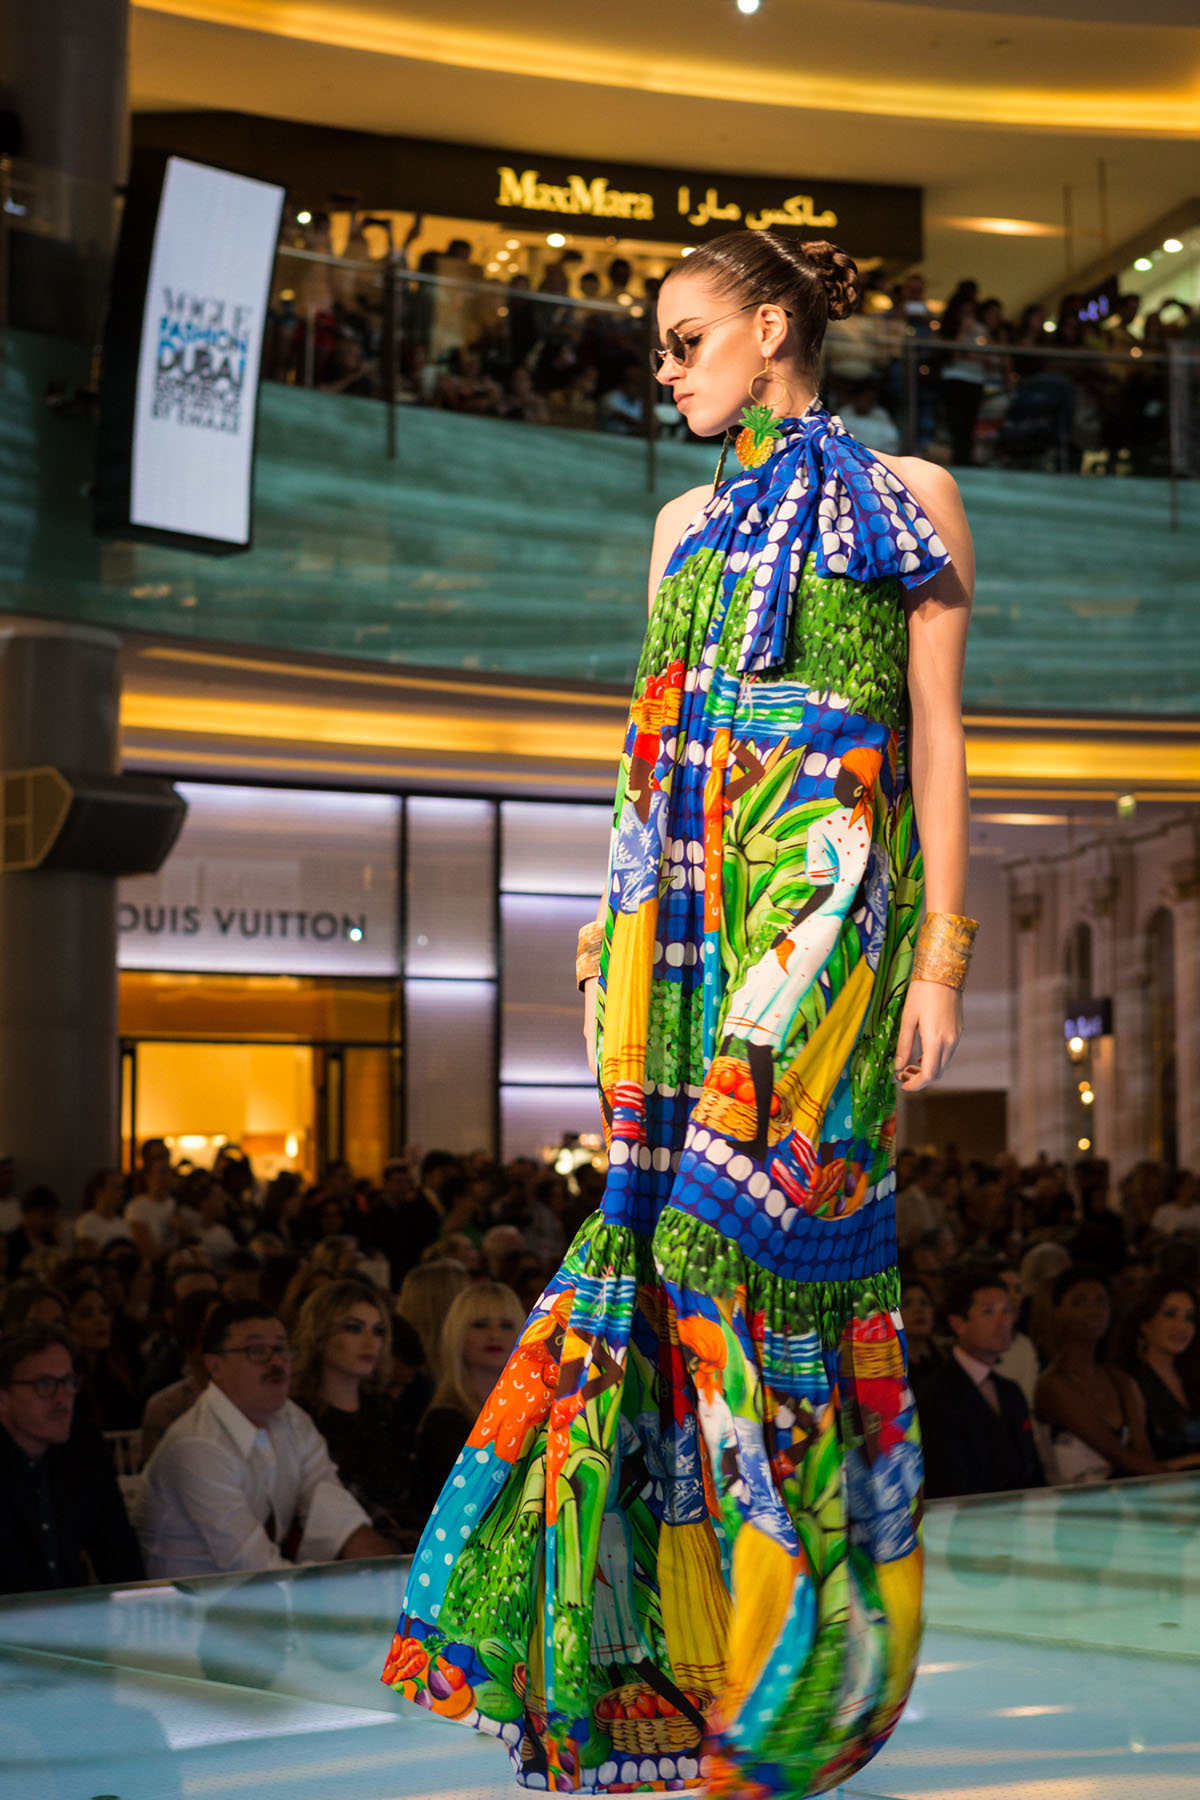 Model walking the runway at the Vogue Fashion Show event in Dubai Mall by Loesje Kessels Fashion Photographer Dubai